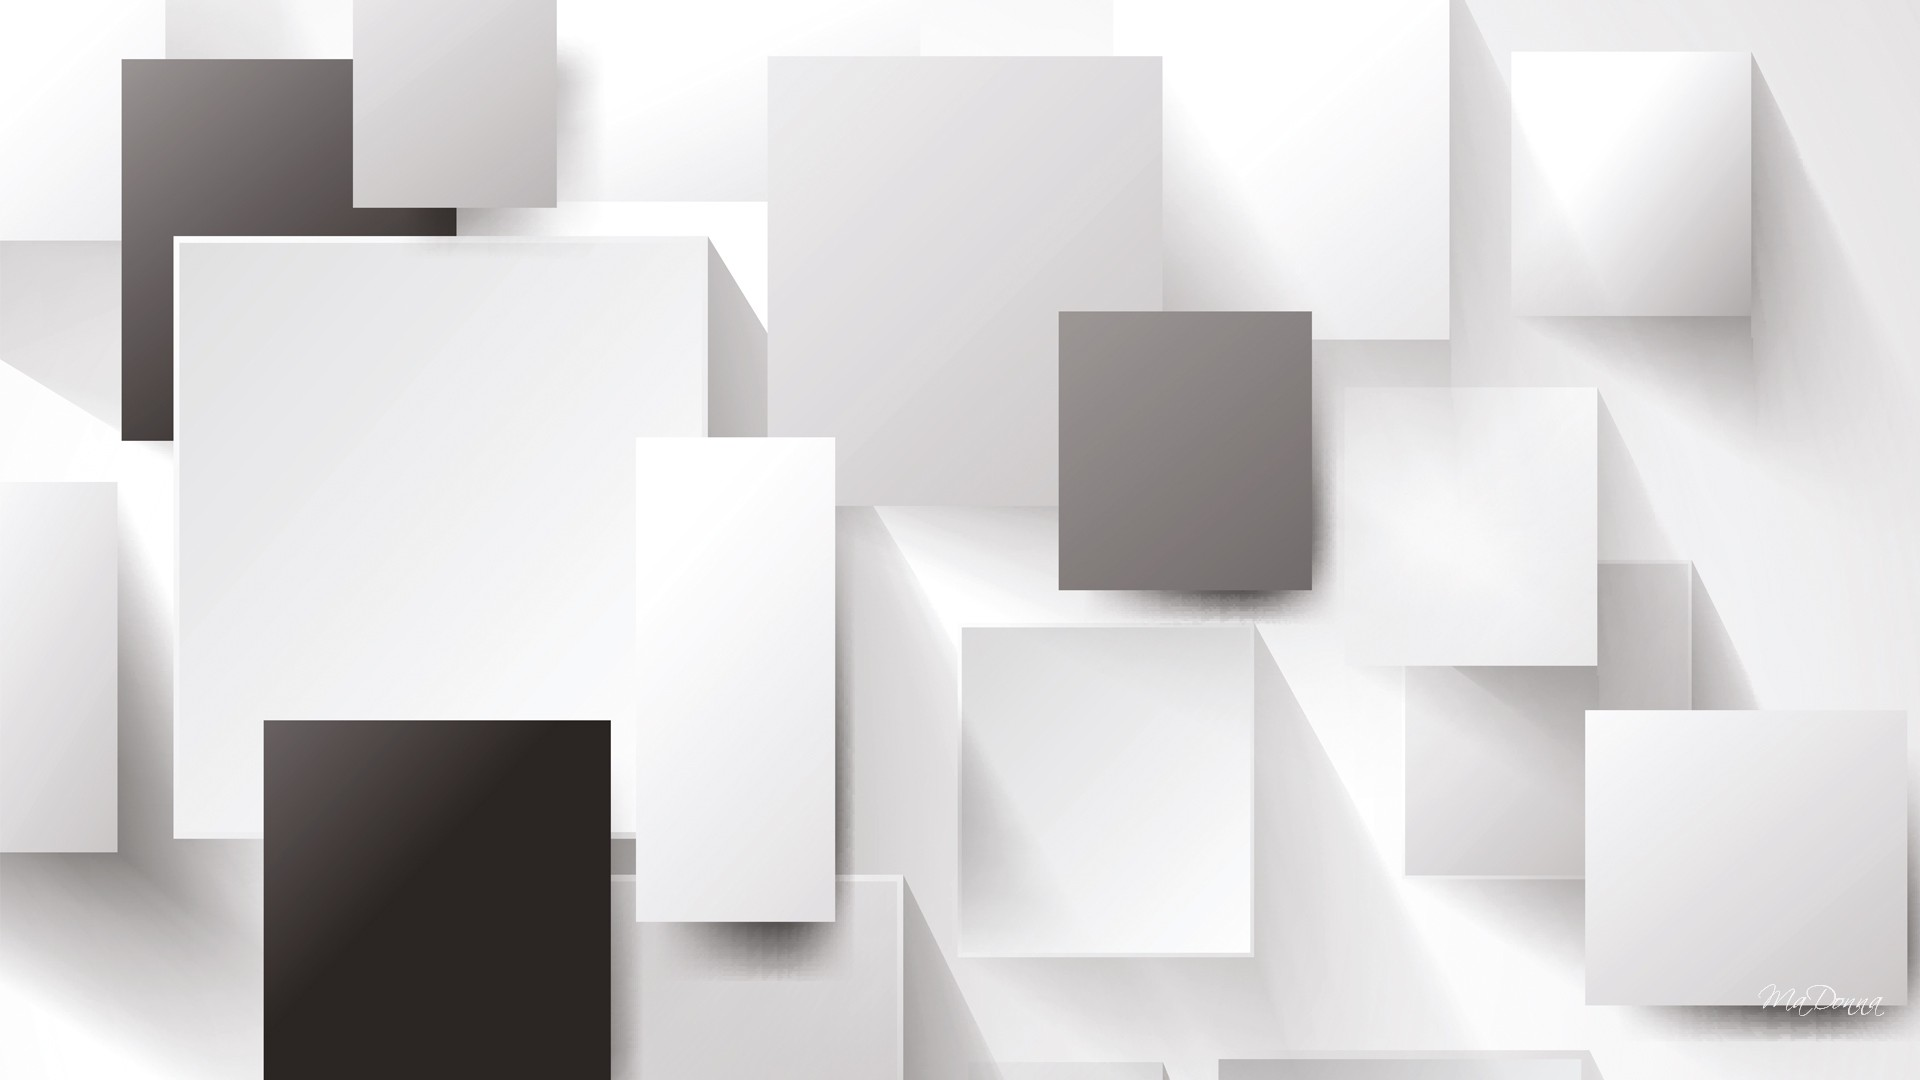 White Abstract Wallpaper For Android sfh Abstract at ngepLukcom 1920x1080